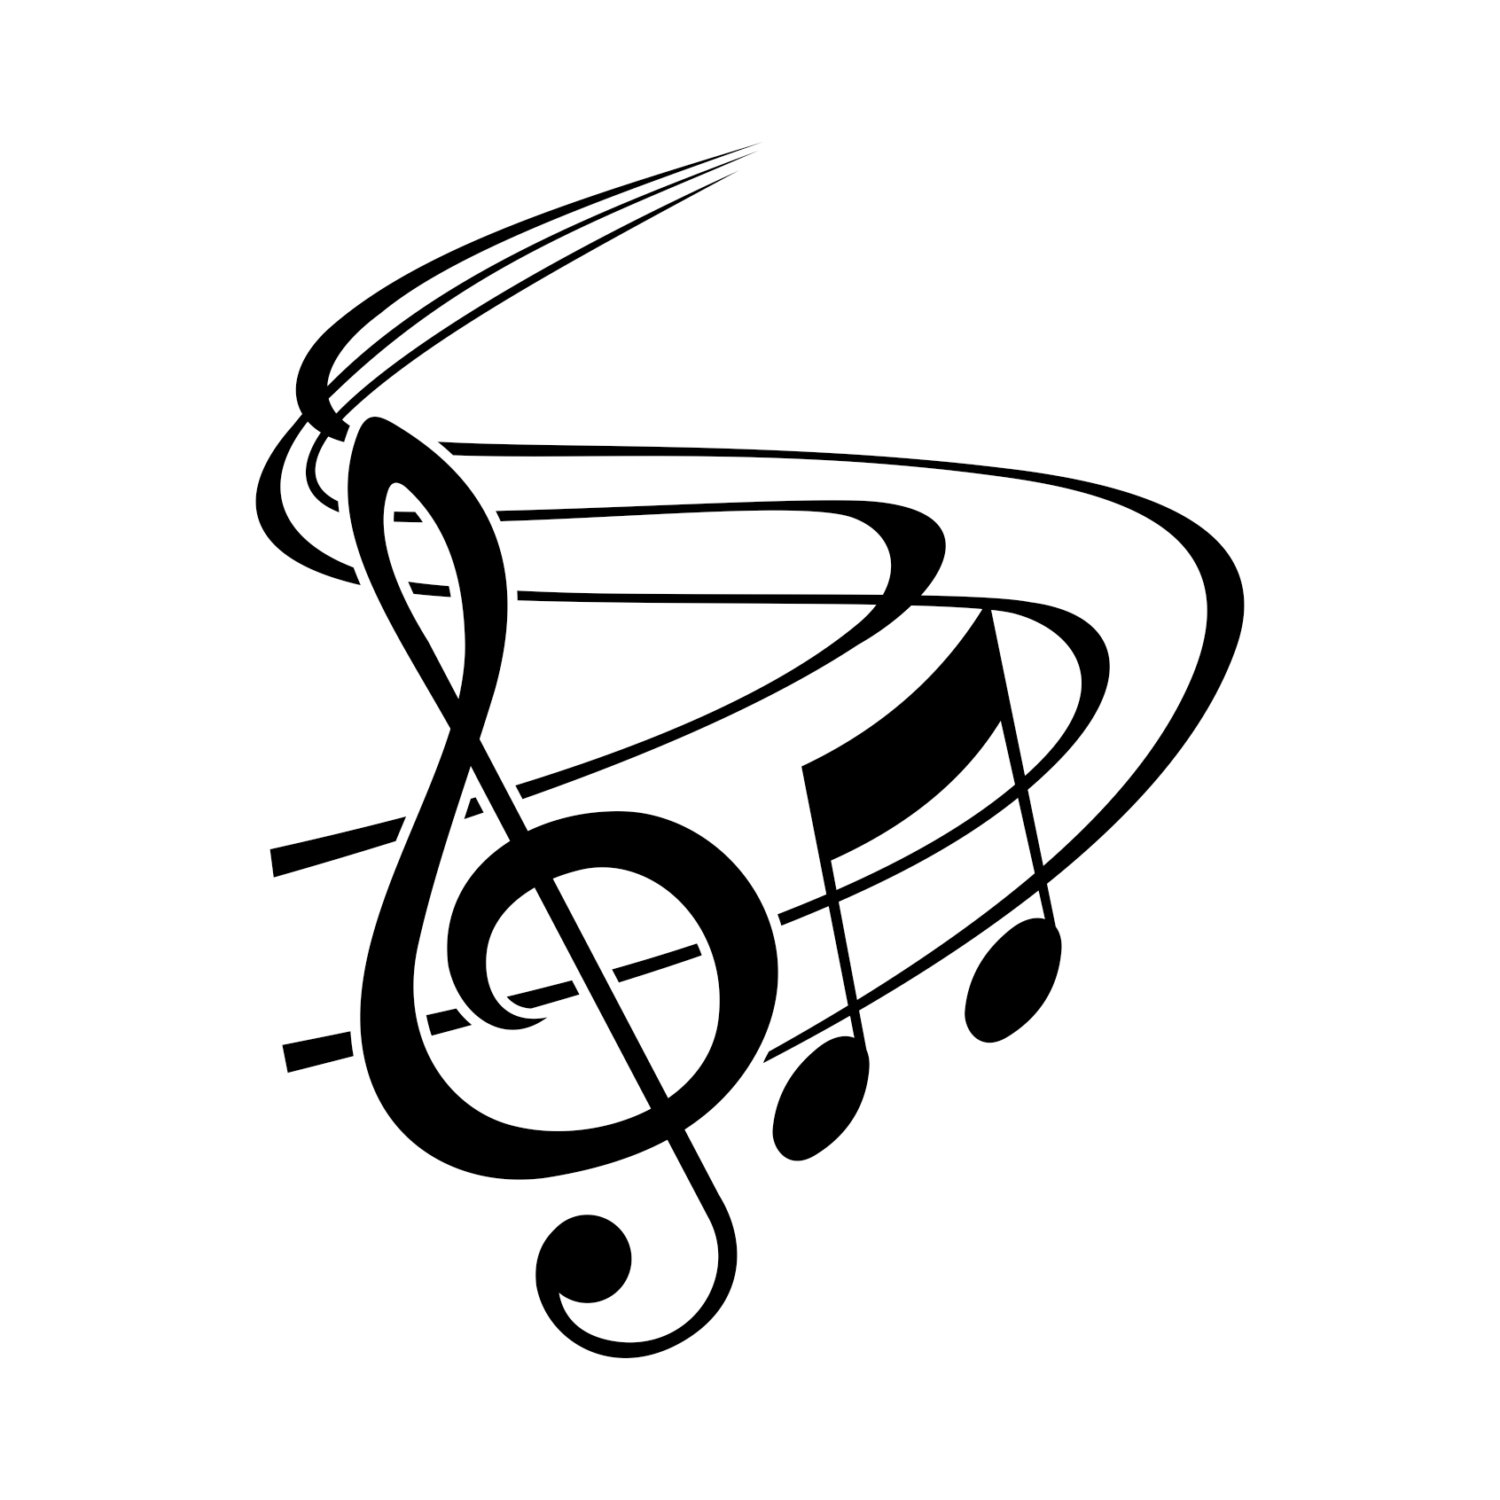 Classic Music Notes With Treble Clef Graphics By